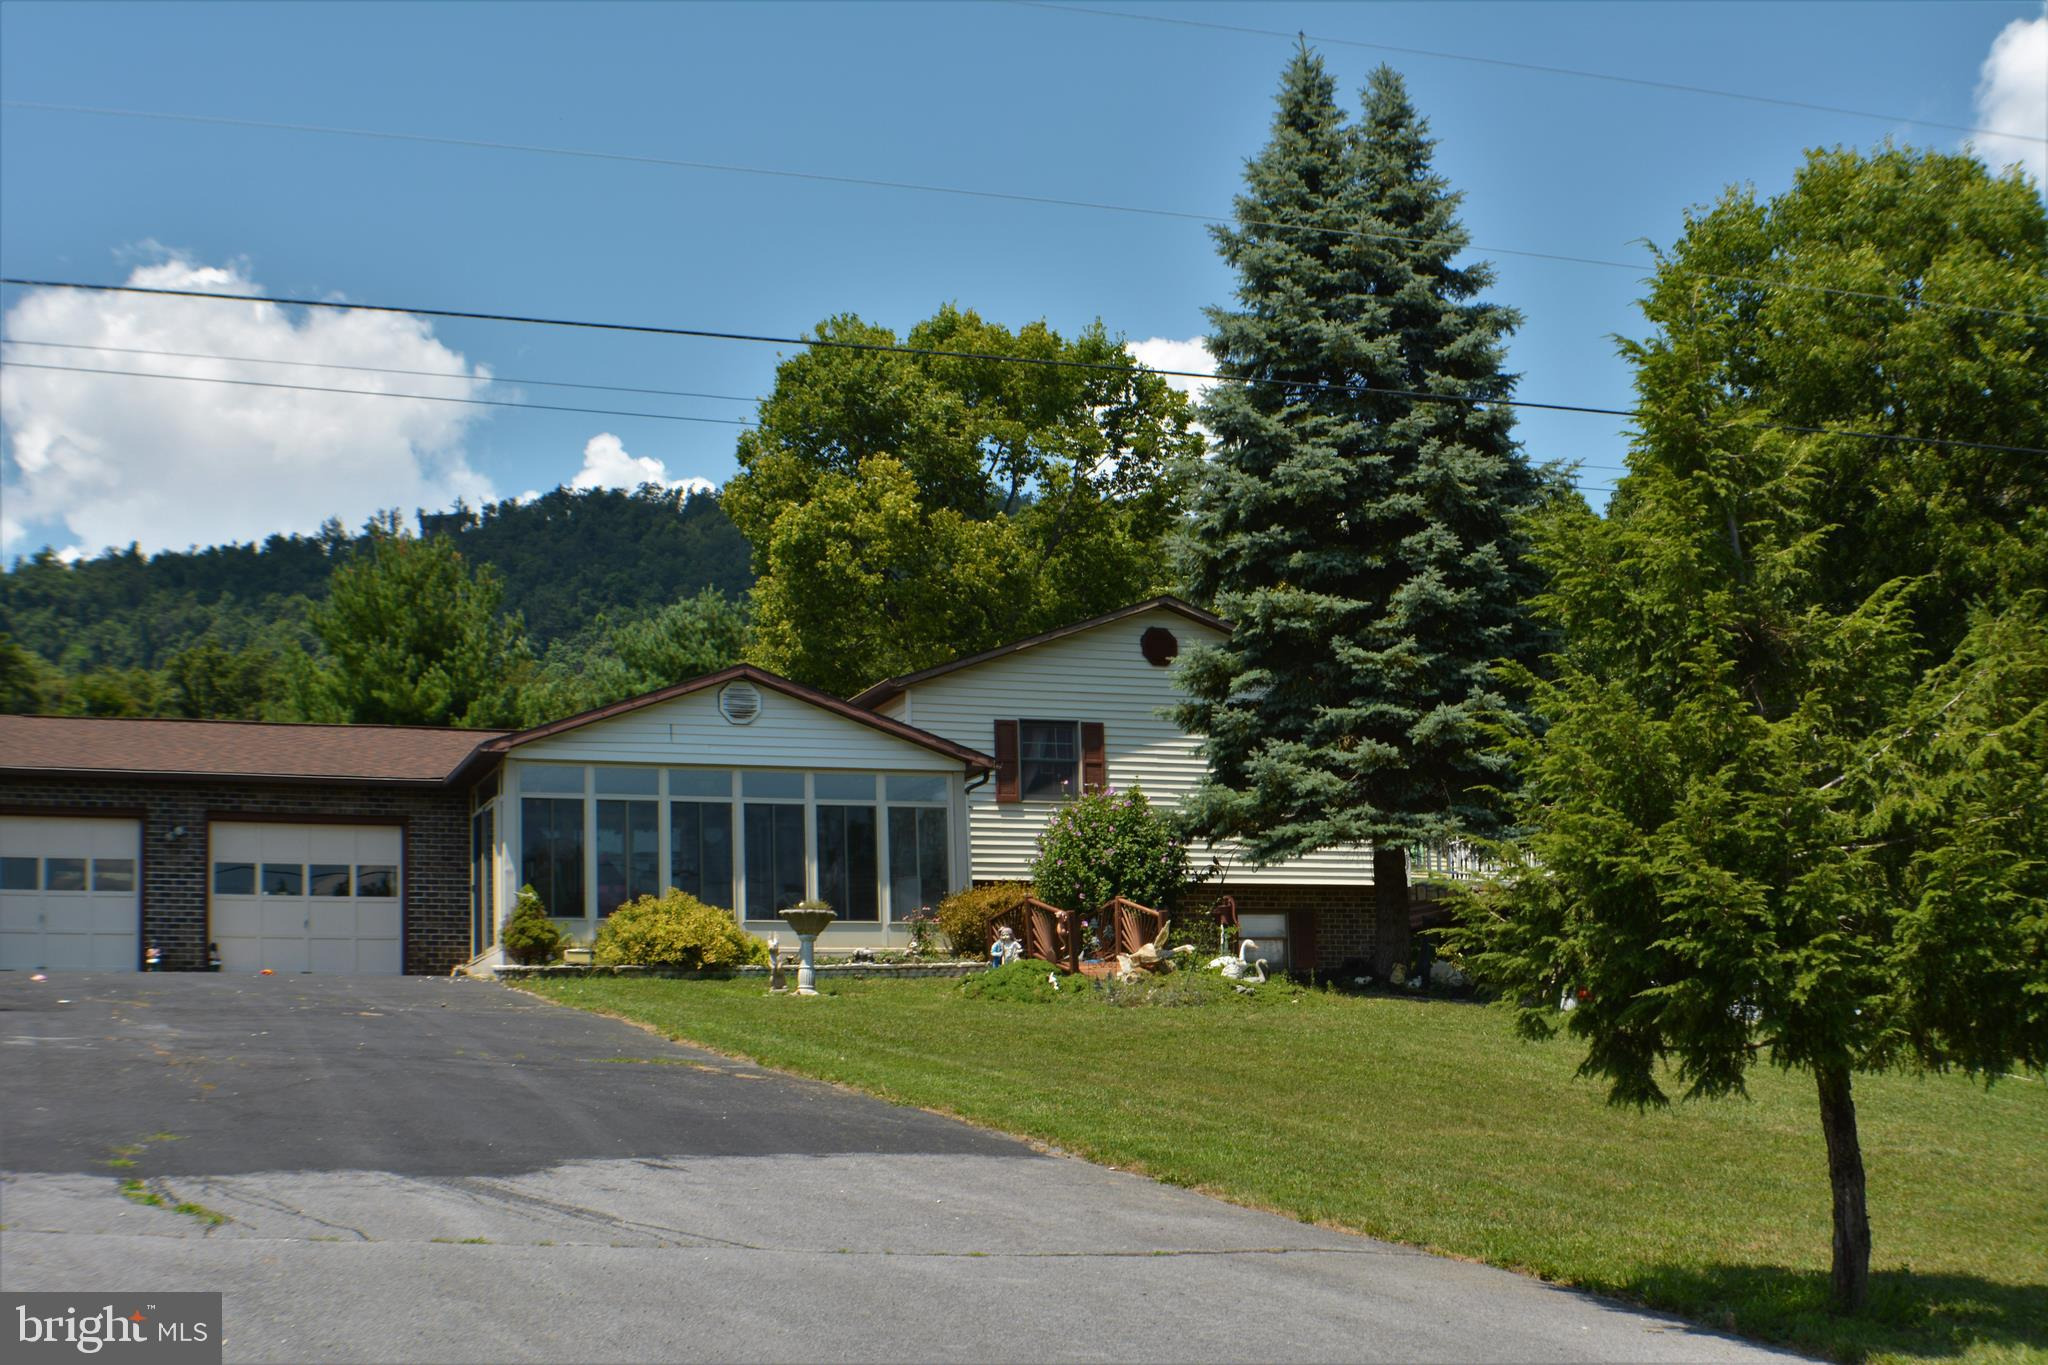 LOOP ROAD, GERRARDSTOWN, WV 25420